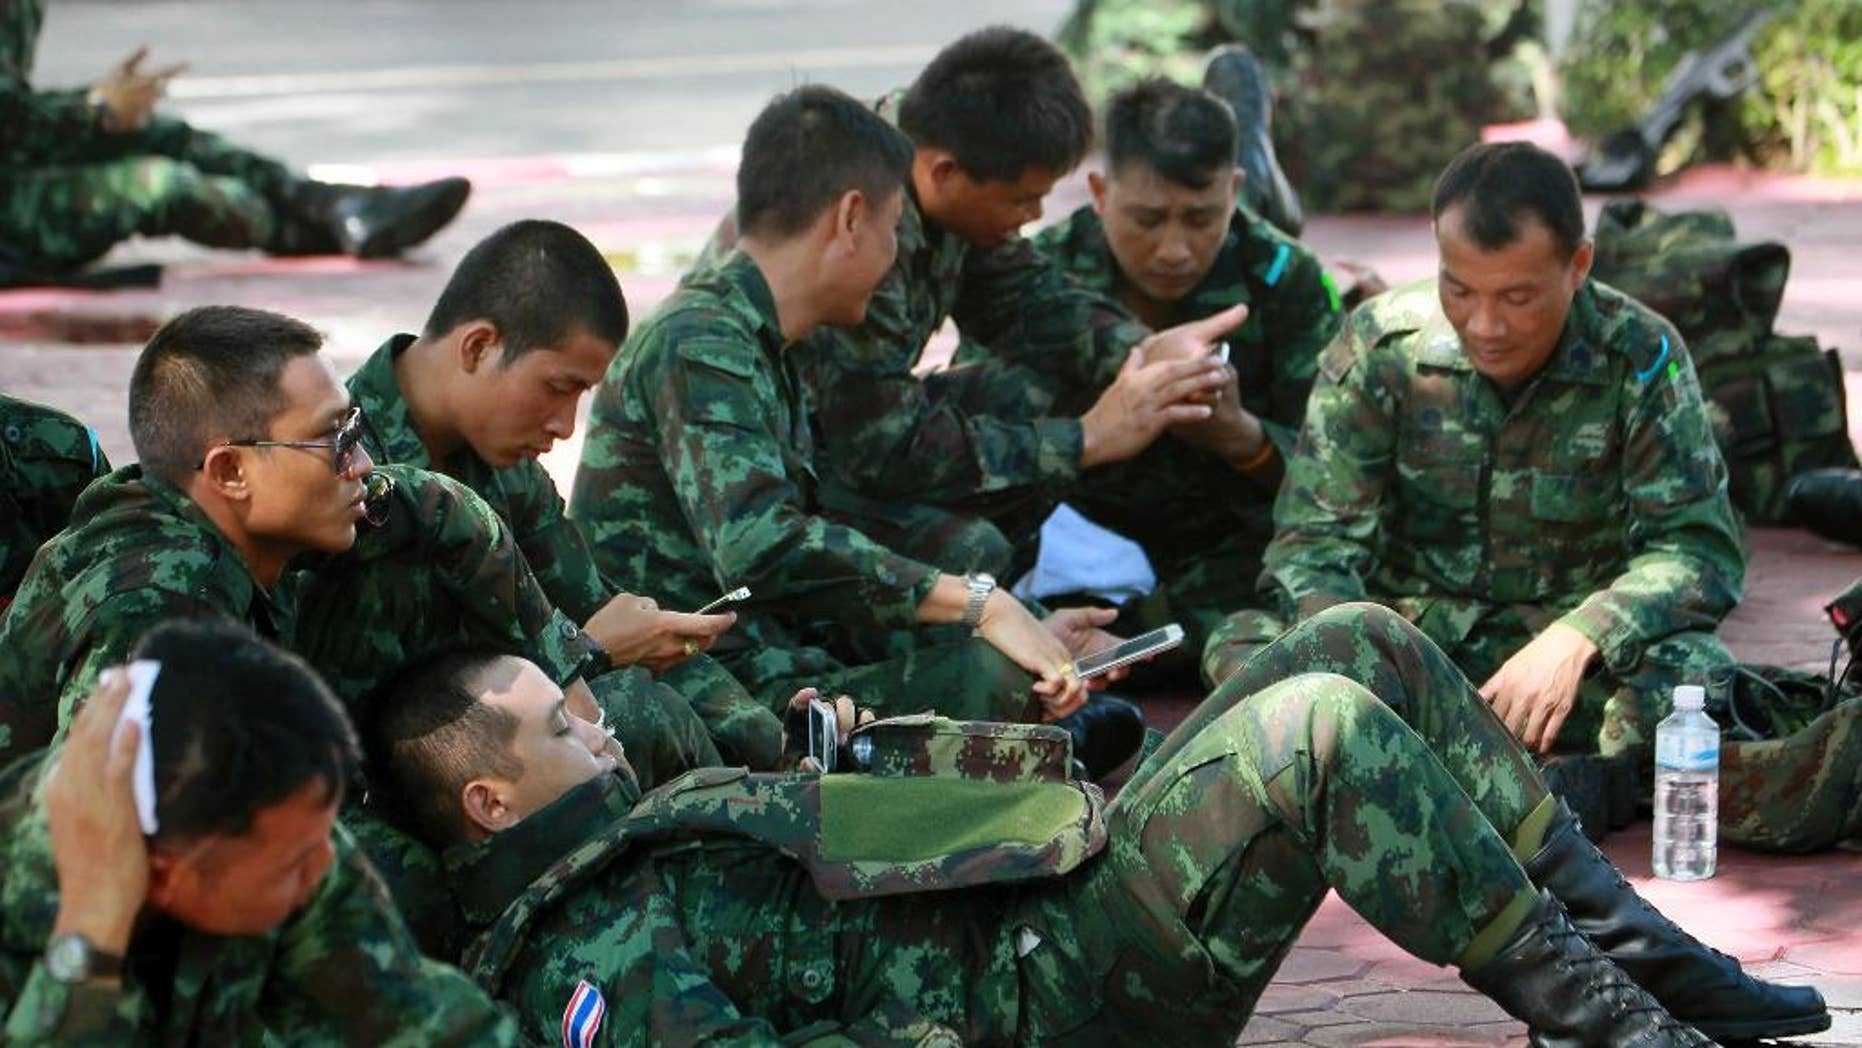 Thai soldiers rest on the ground at police headquarters after being deployed to prevent an anti-coup demonstration in Bangkok, Thailand Sunday, June 1, 2014. An anti-coup activist in Thailand called Friday for a weekend rally to defy the military government's ban on demonstrations, urging those opposed to the takeover to wear masks and be ready for cat-and-mouse chases with soldiers in the capital. (AP Photo/Wason Wanichakorn)